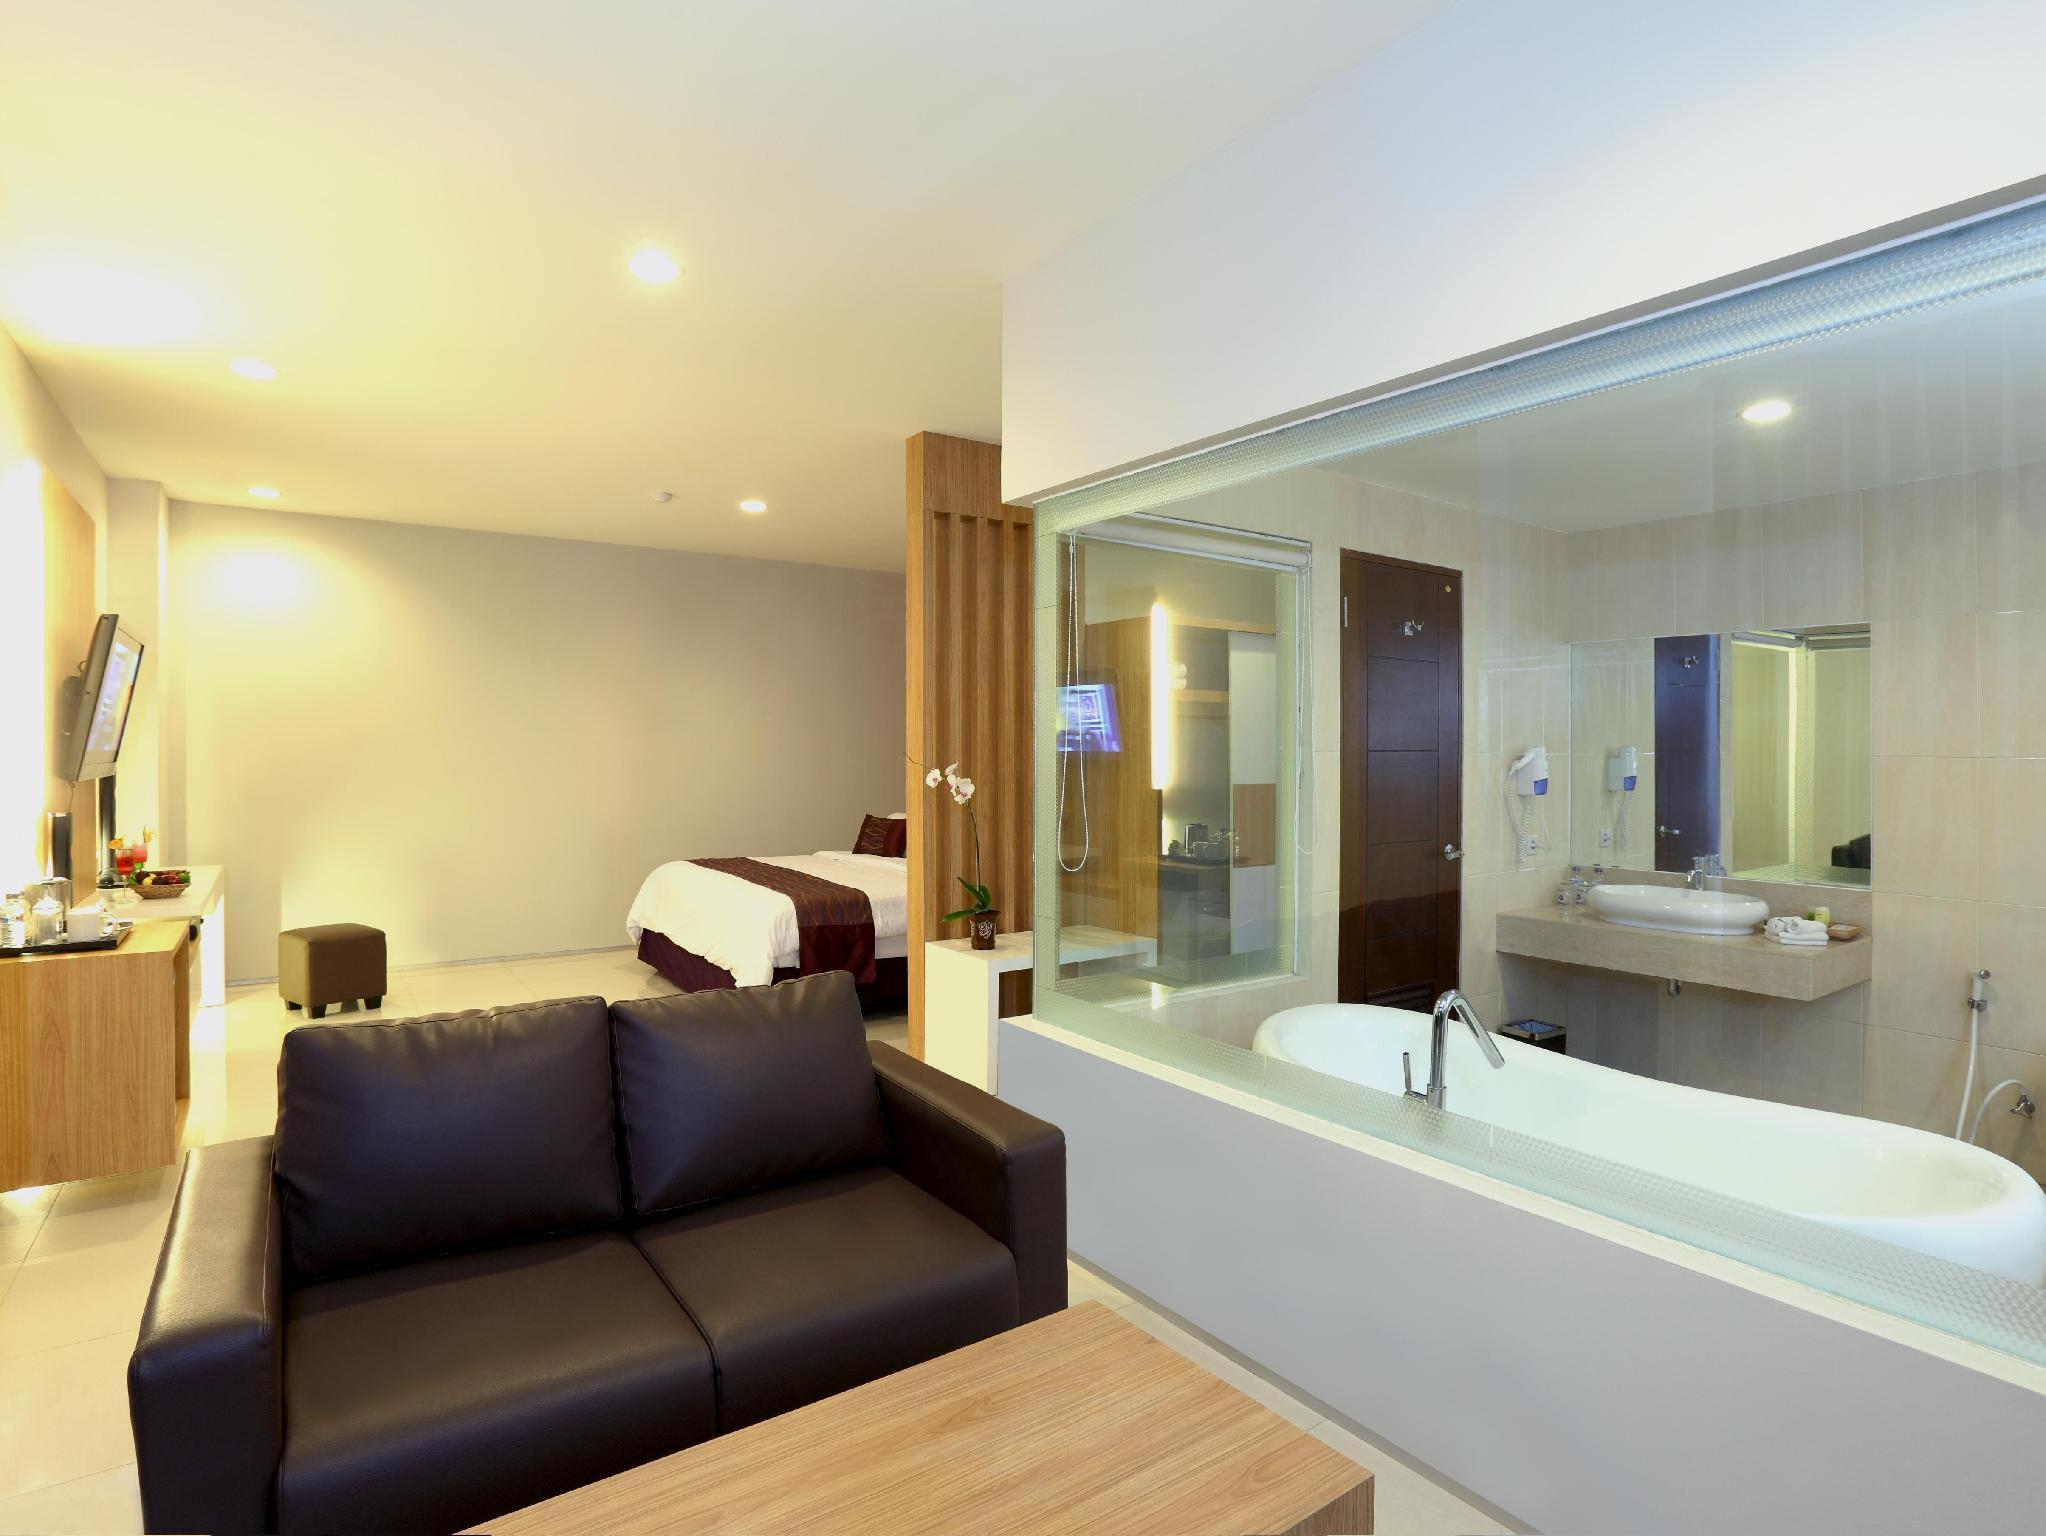 Kamar Suite Plaza (The Plaza Suite Rooms)